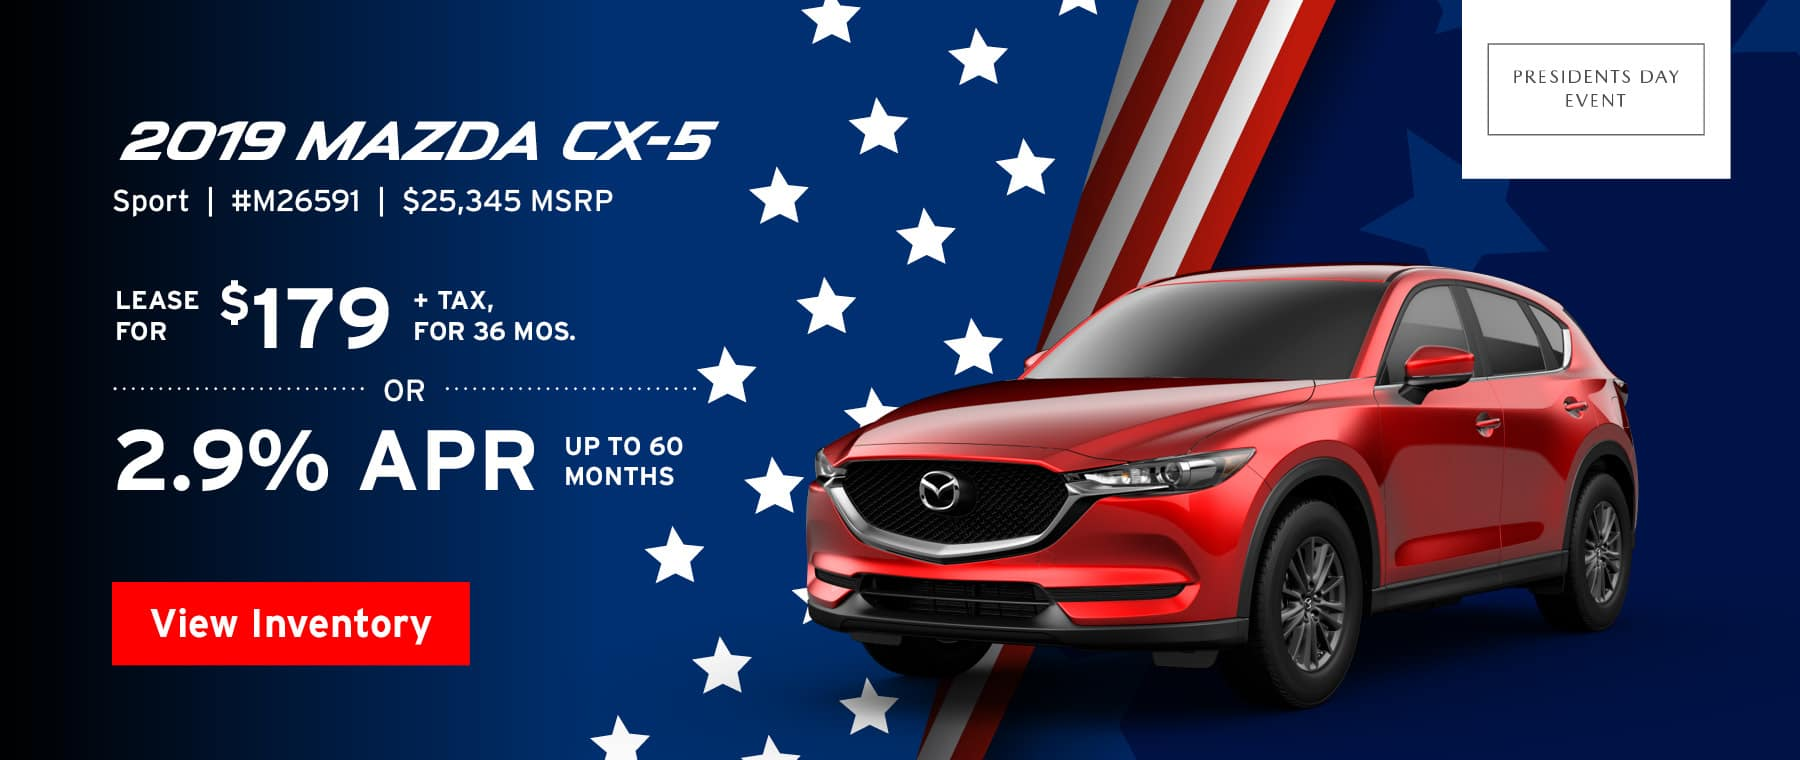 Lease the 2018 Mazda CX-5 Sport for $179, plus tax for 36 months, or 2.9% APR up to 60 months.